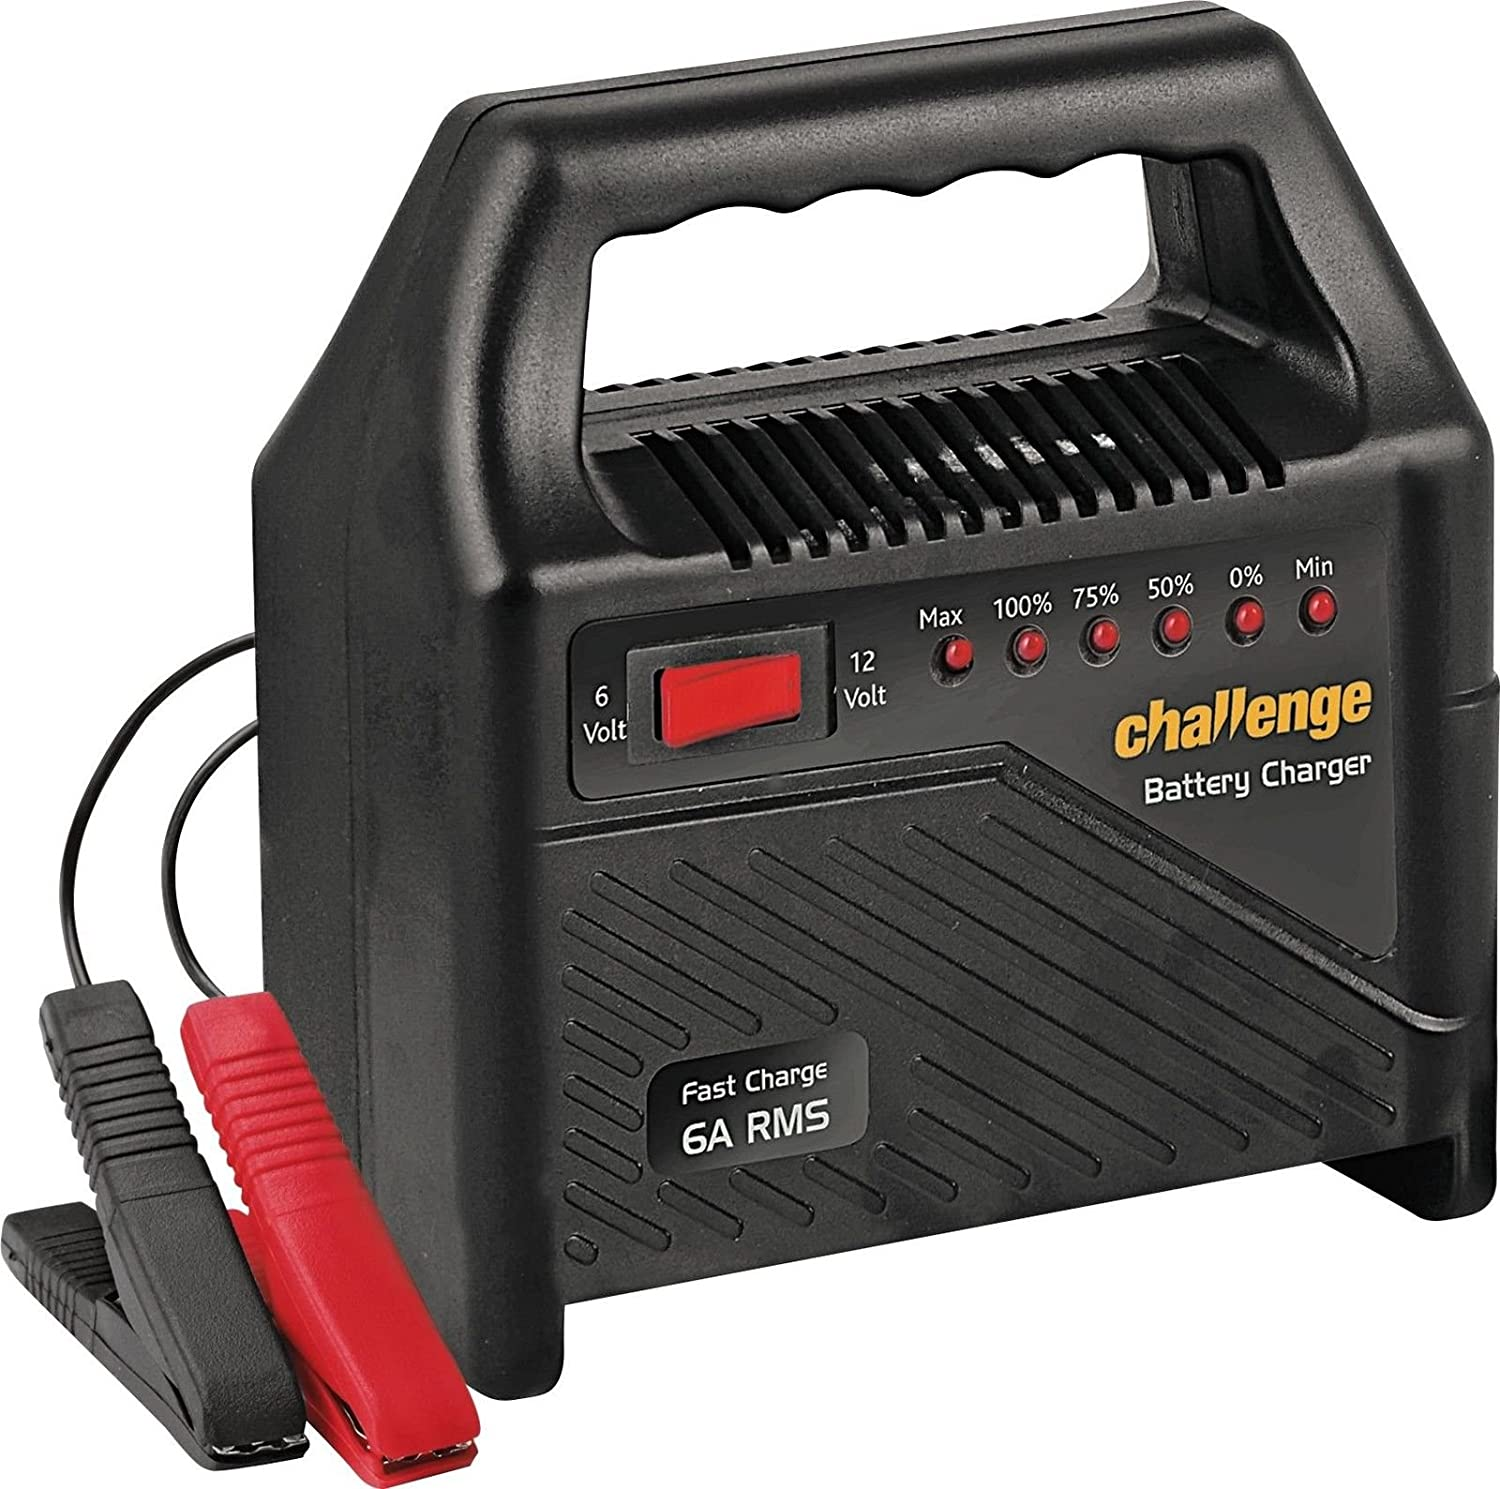 Challenge 612 Volt Battery Charger (7404355)